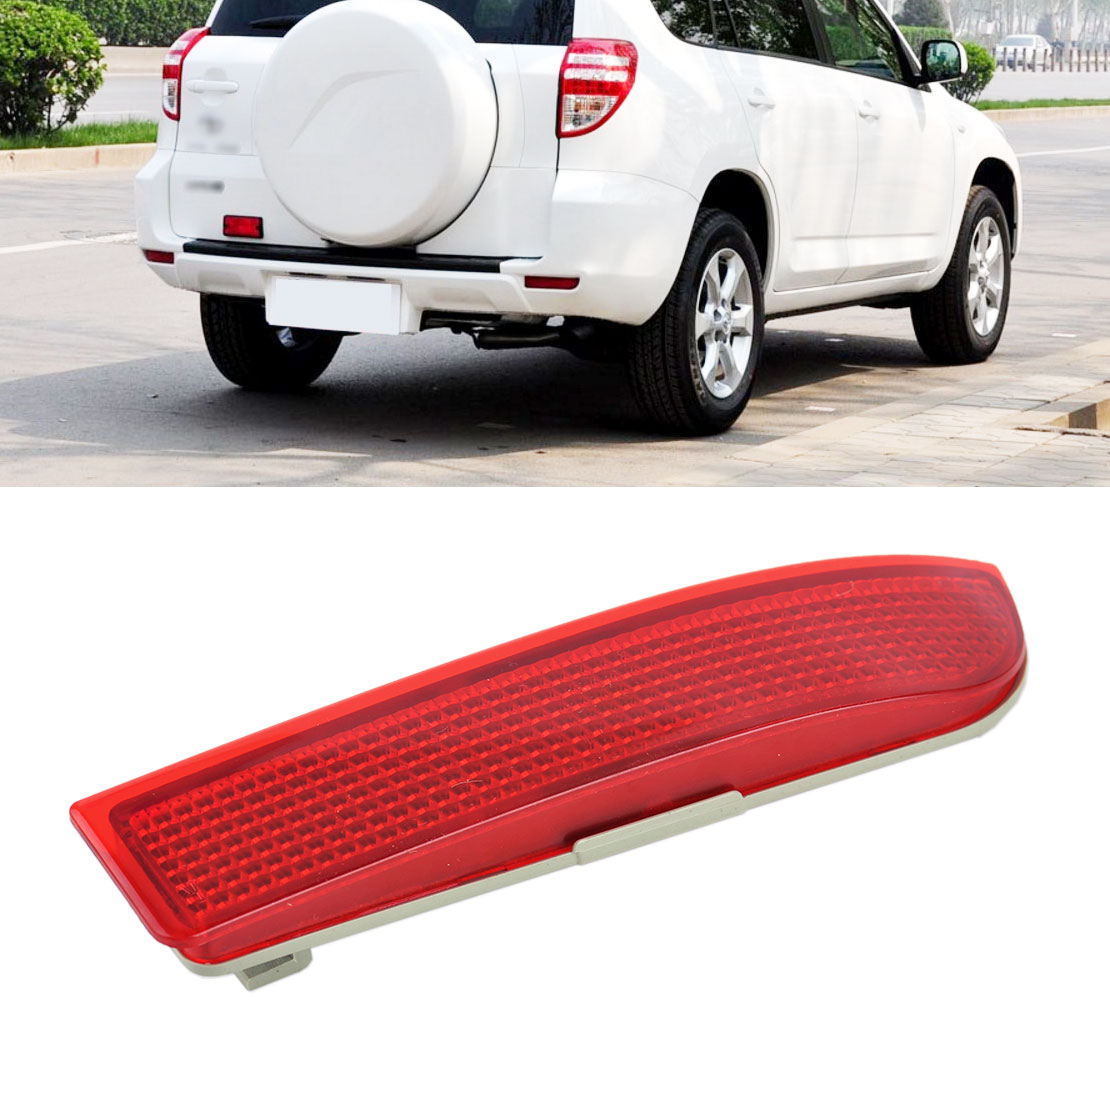 DWCX Car Plastic Red & Grey Right Bumper Rear Light Lamp Cover Reflector 81920-0R020 fit for Toyota RAV4 2009 2010 2011 2012 car rear trunk security shield shade cargo cover for nissan qashqai 2008 2009 2010 2011 2012 2013 black beige